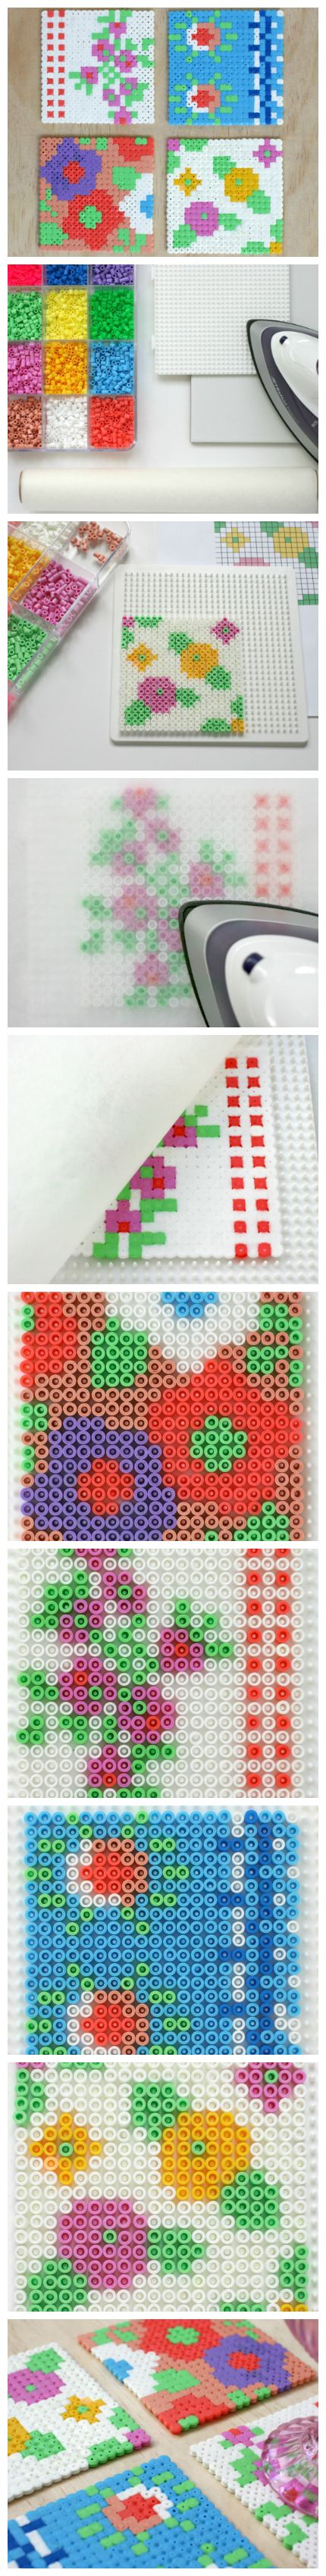 Tutorial: Make a set of vintage floral Hama (Perler) bead coasters